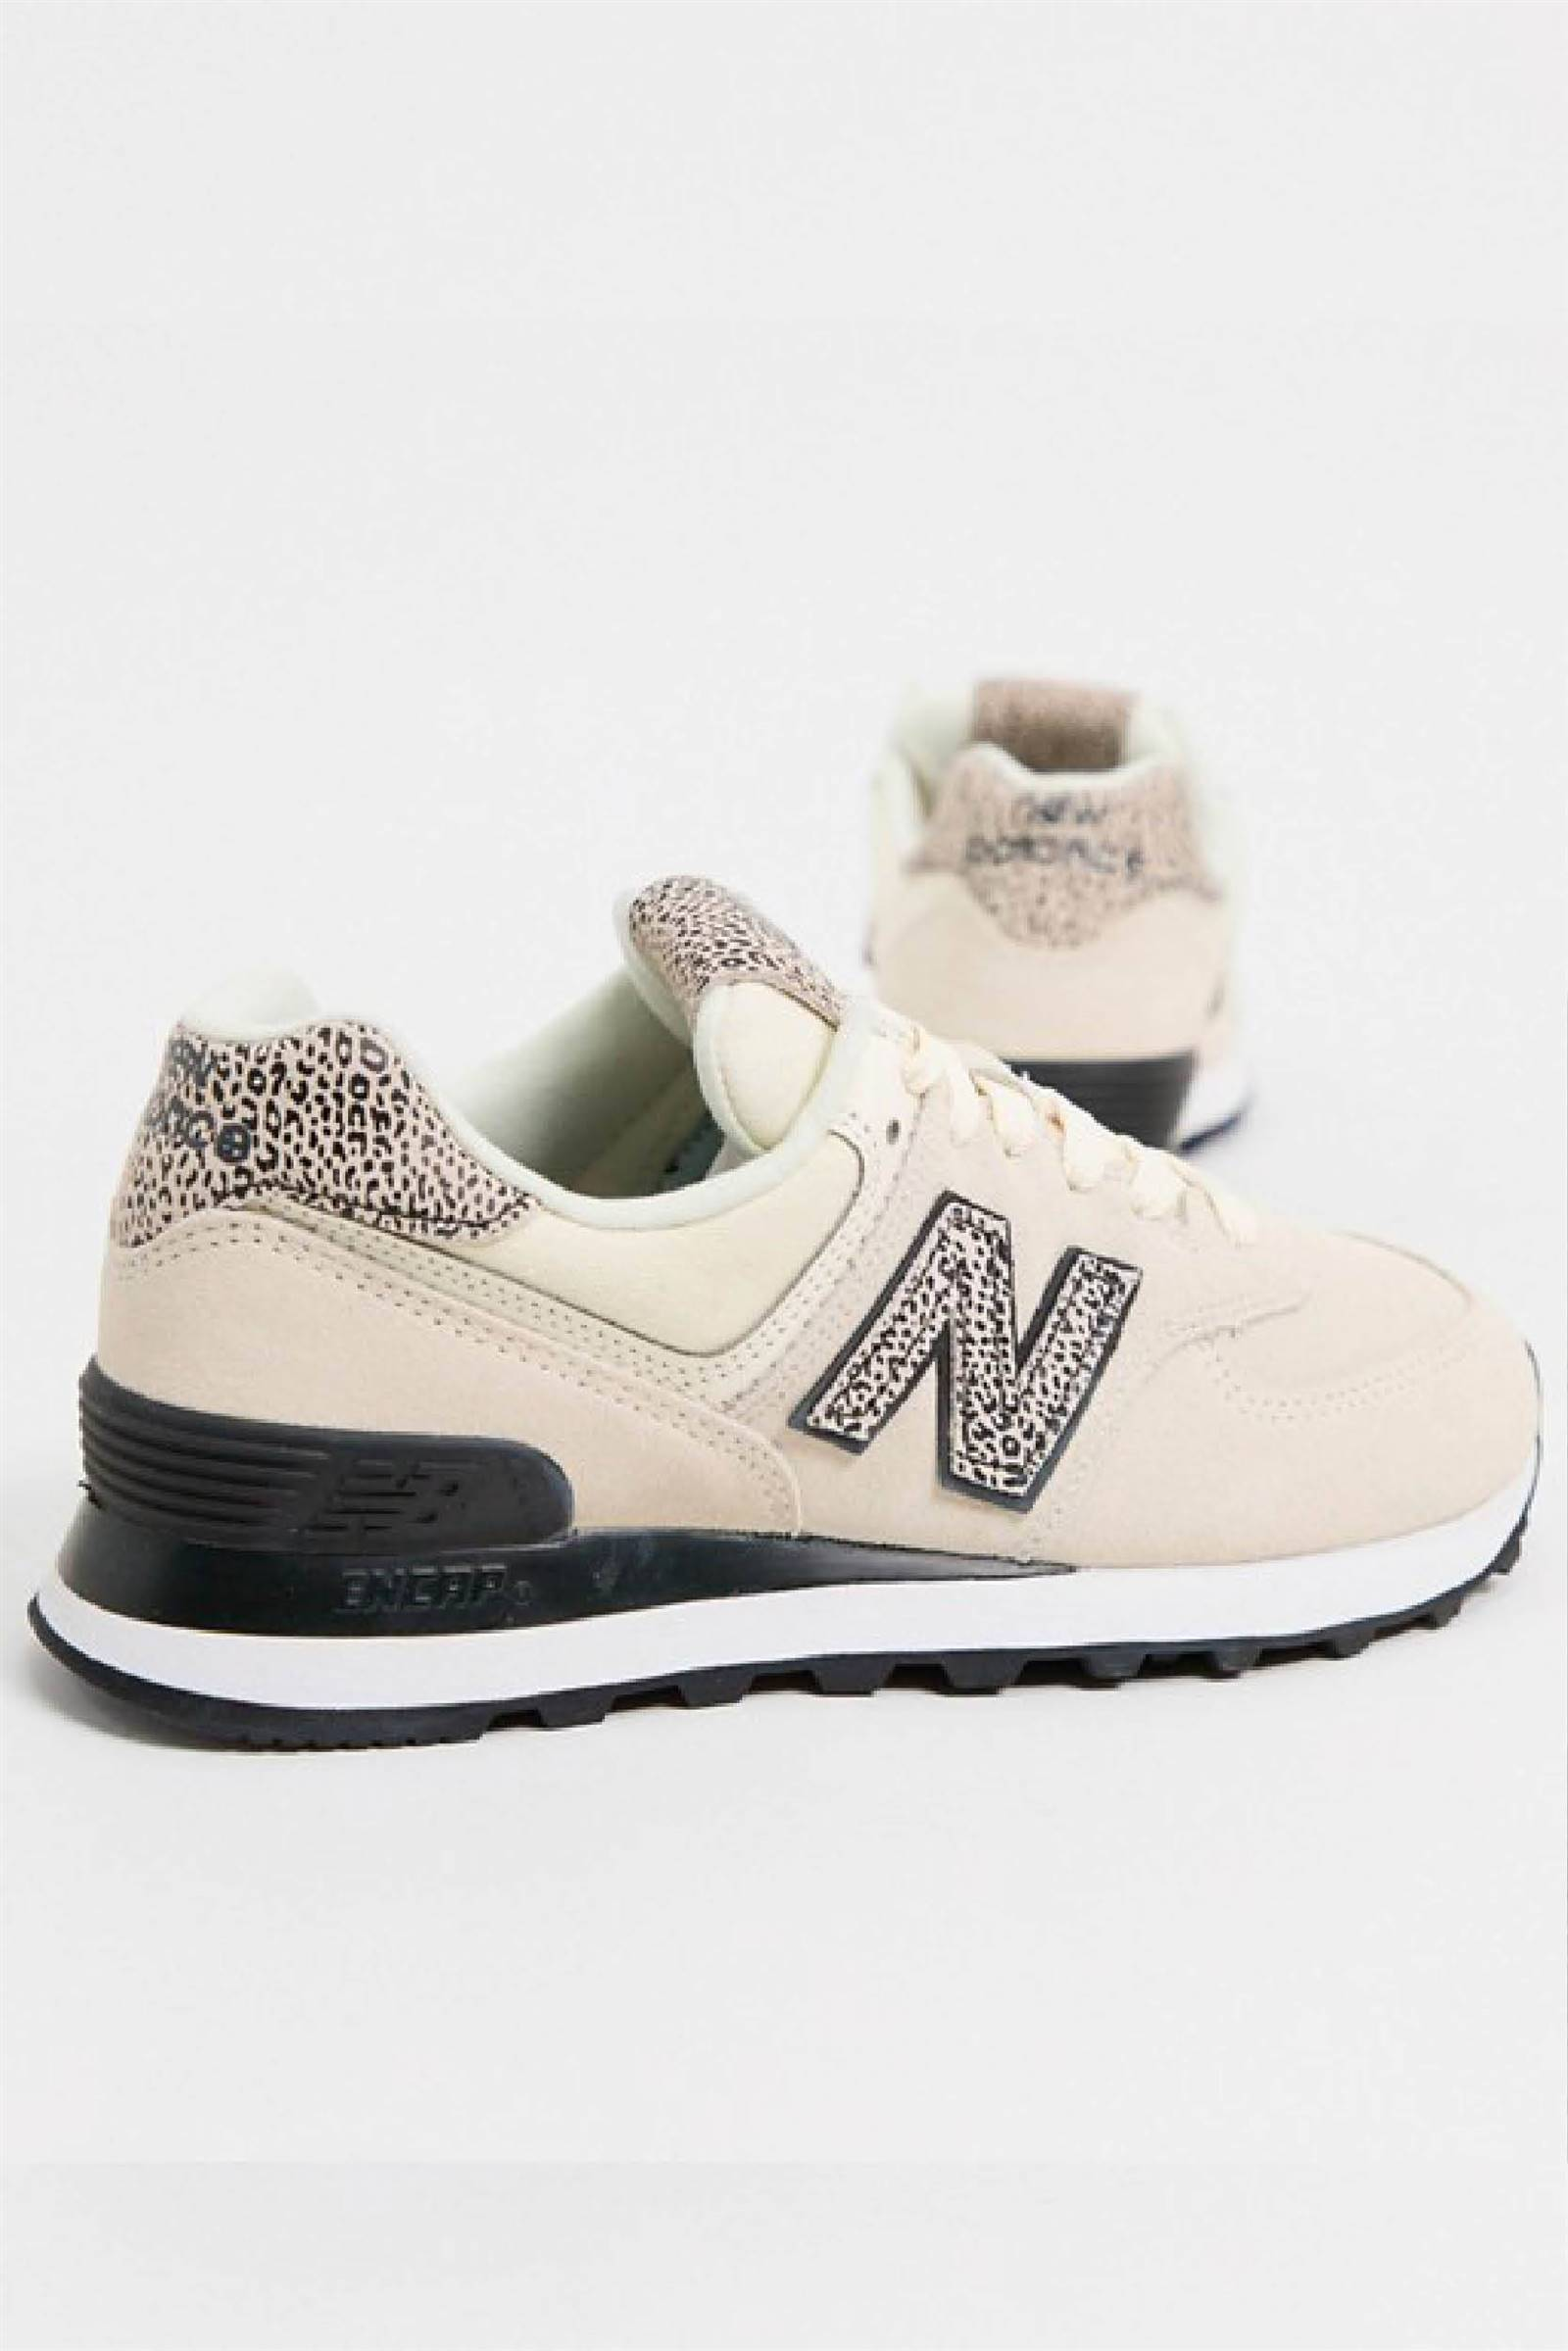 zapatillas historia. New Balance 574